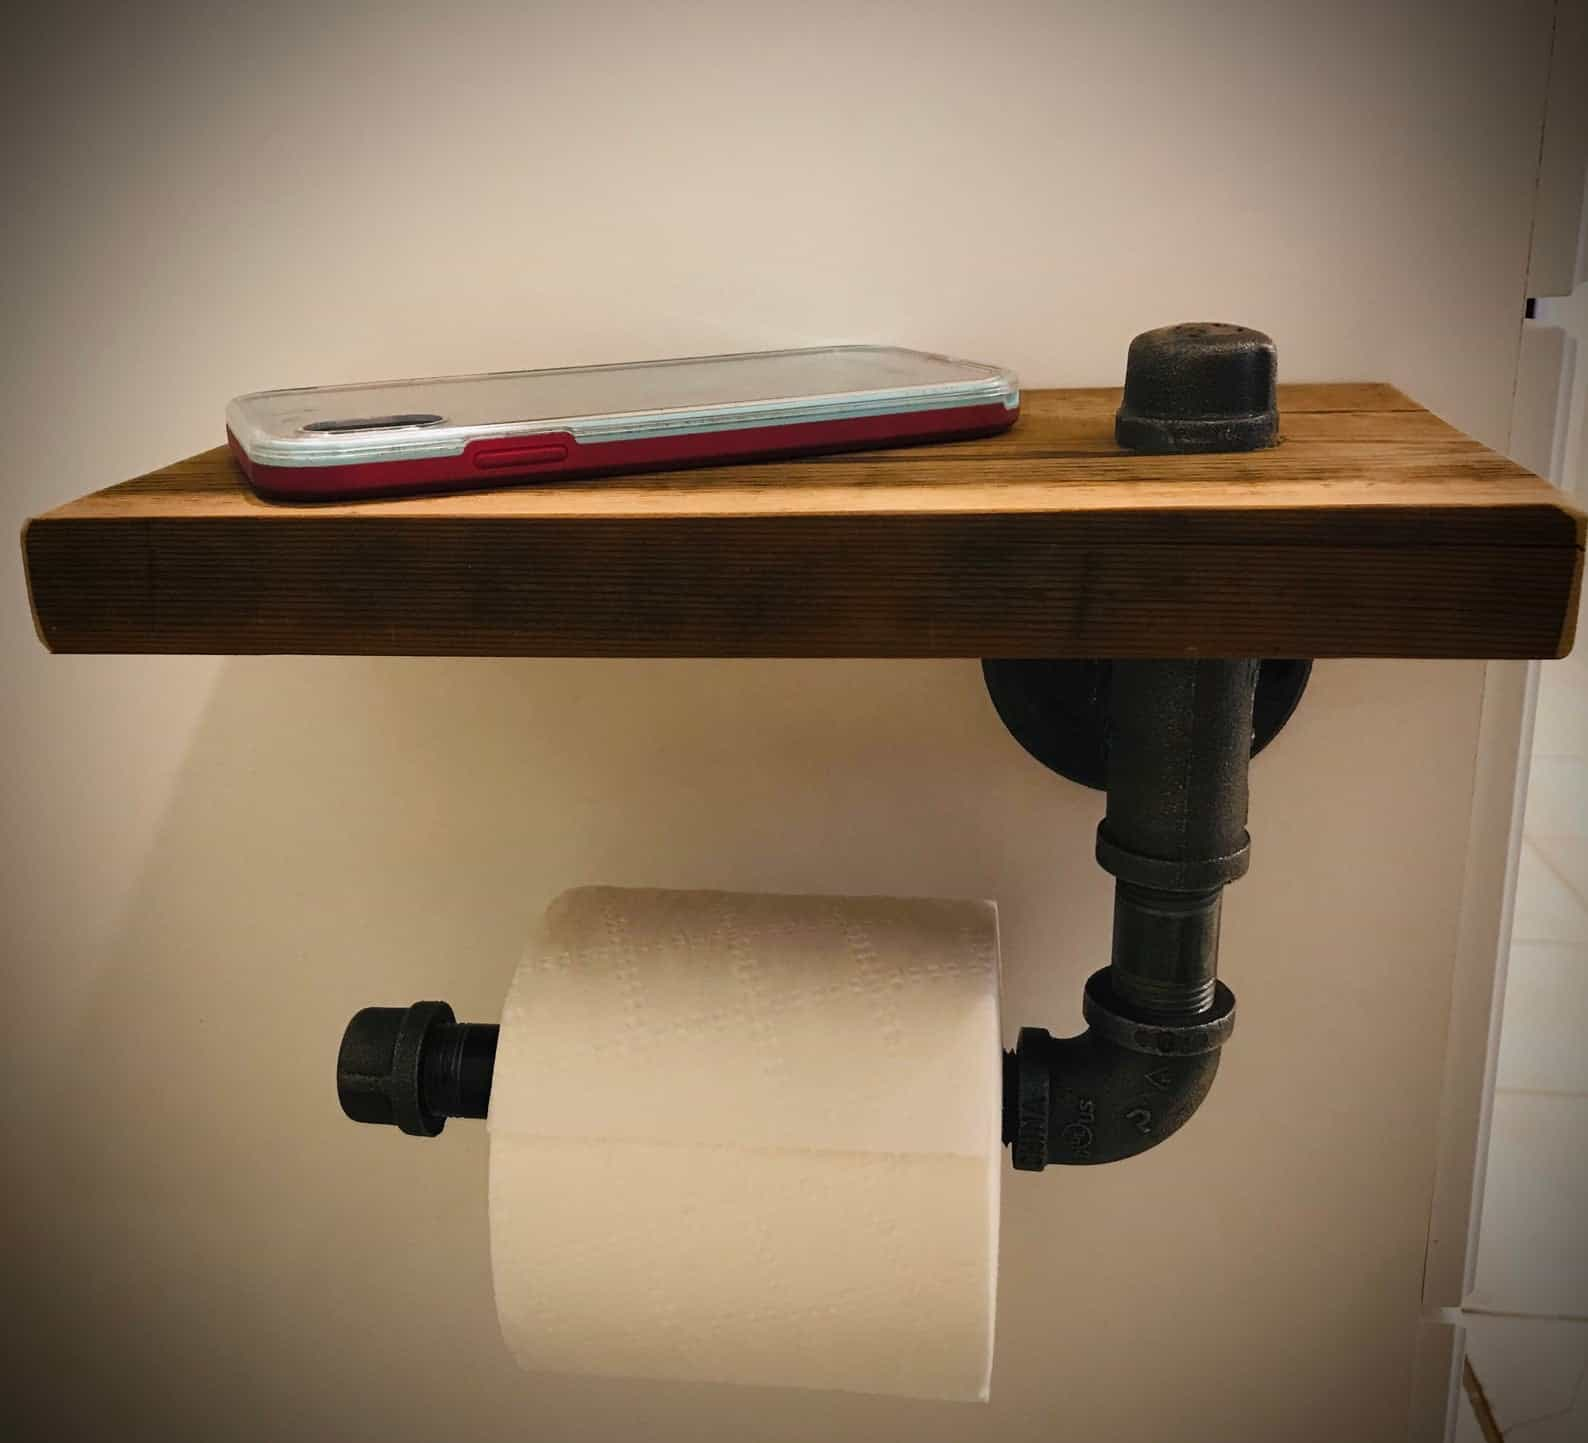 Rustic toilet paper holder